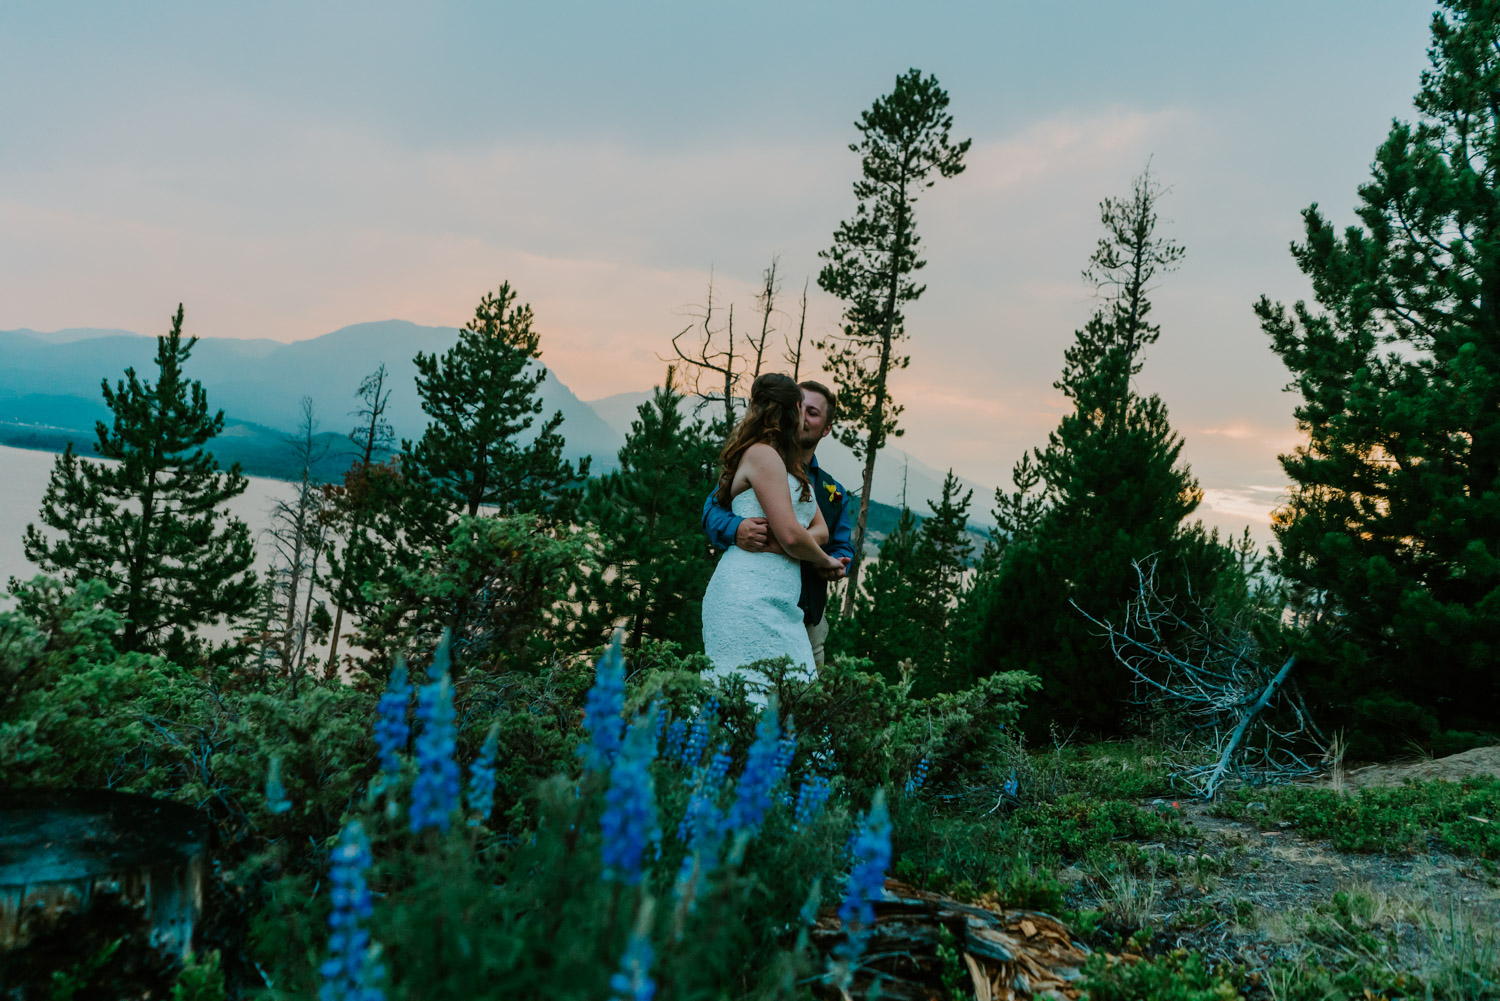 Beth_Jeff_Colorado_Wedding_MegONeillPhotography__180721_124